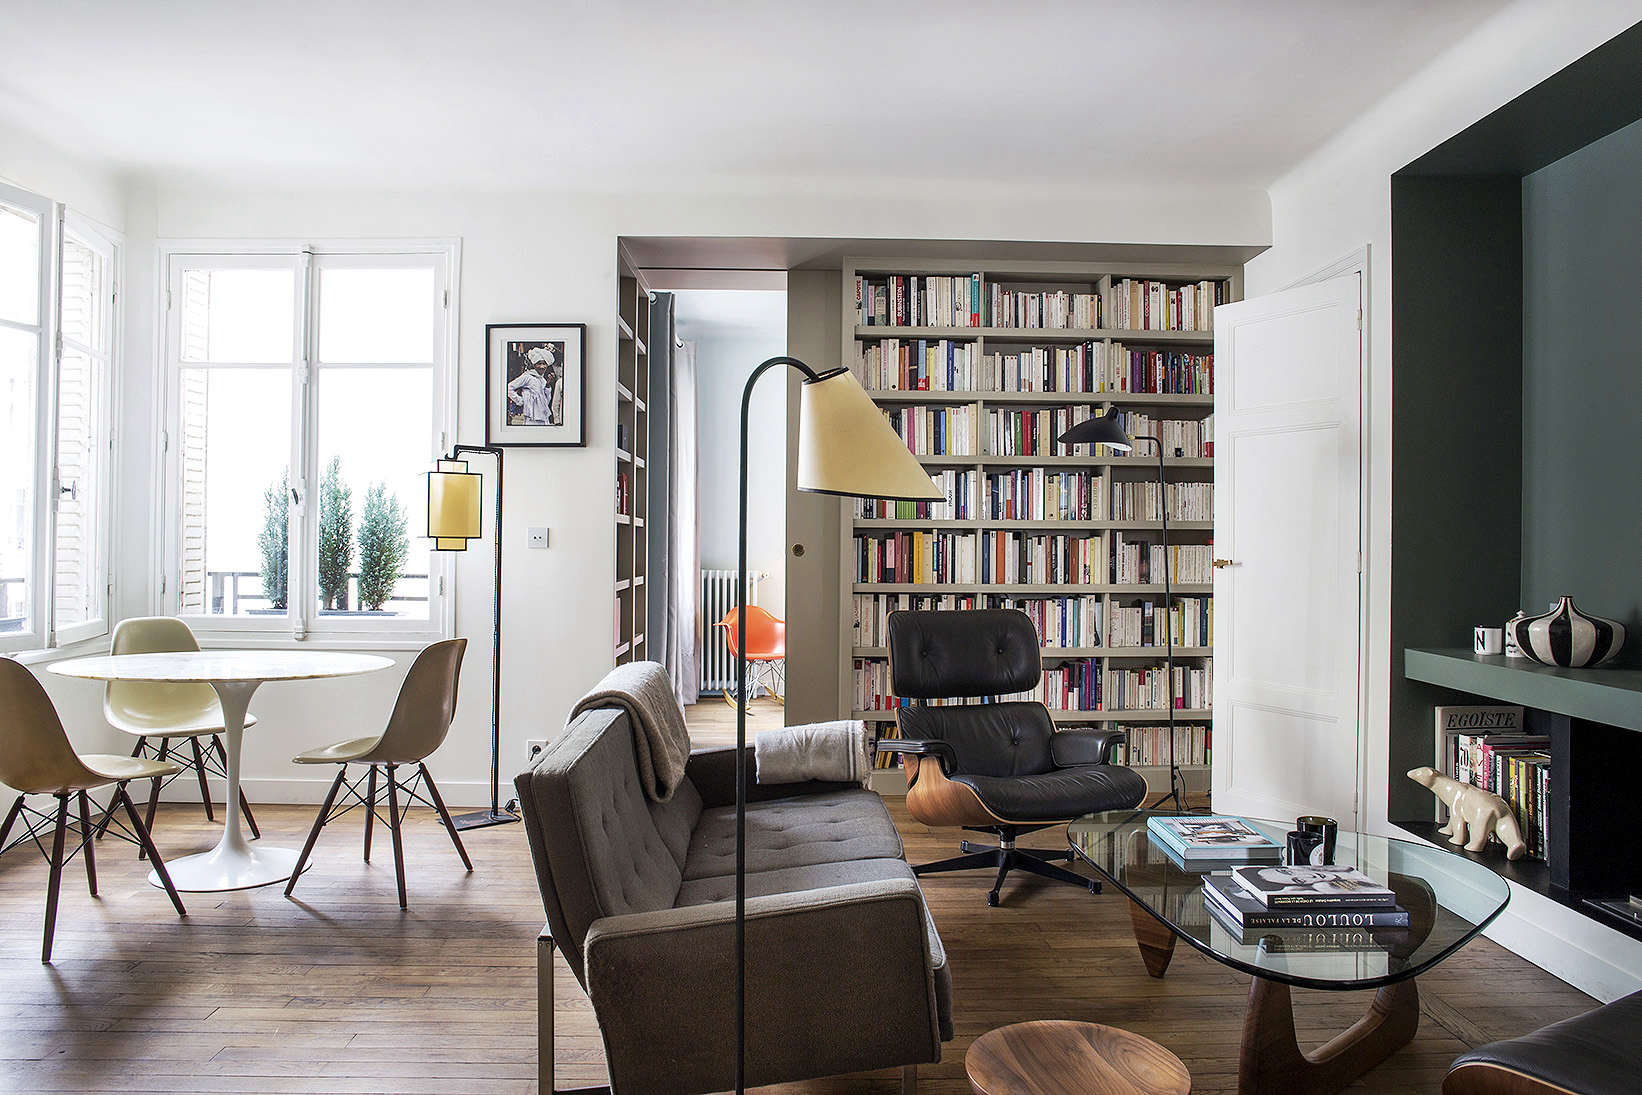 Small Apartment Interior 9 Small Space Ideas To Steal From A Tiny Paris Apartment